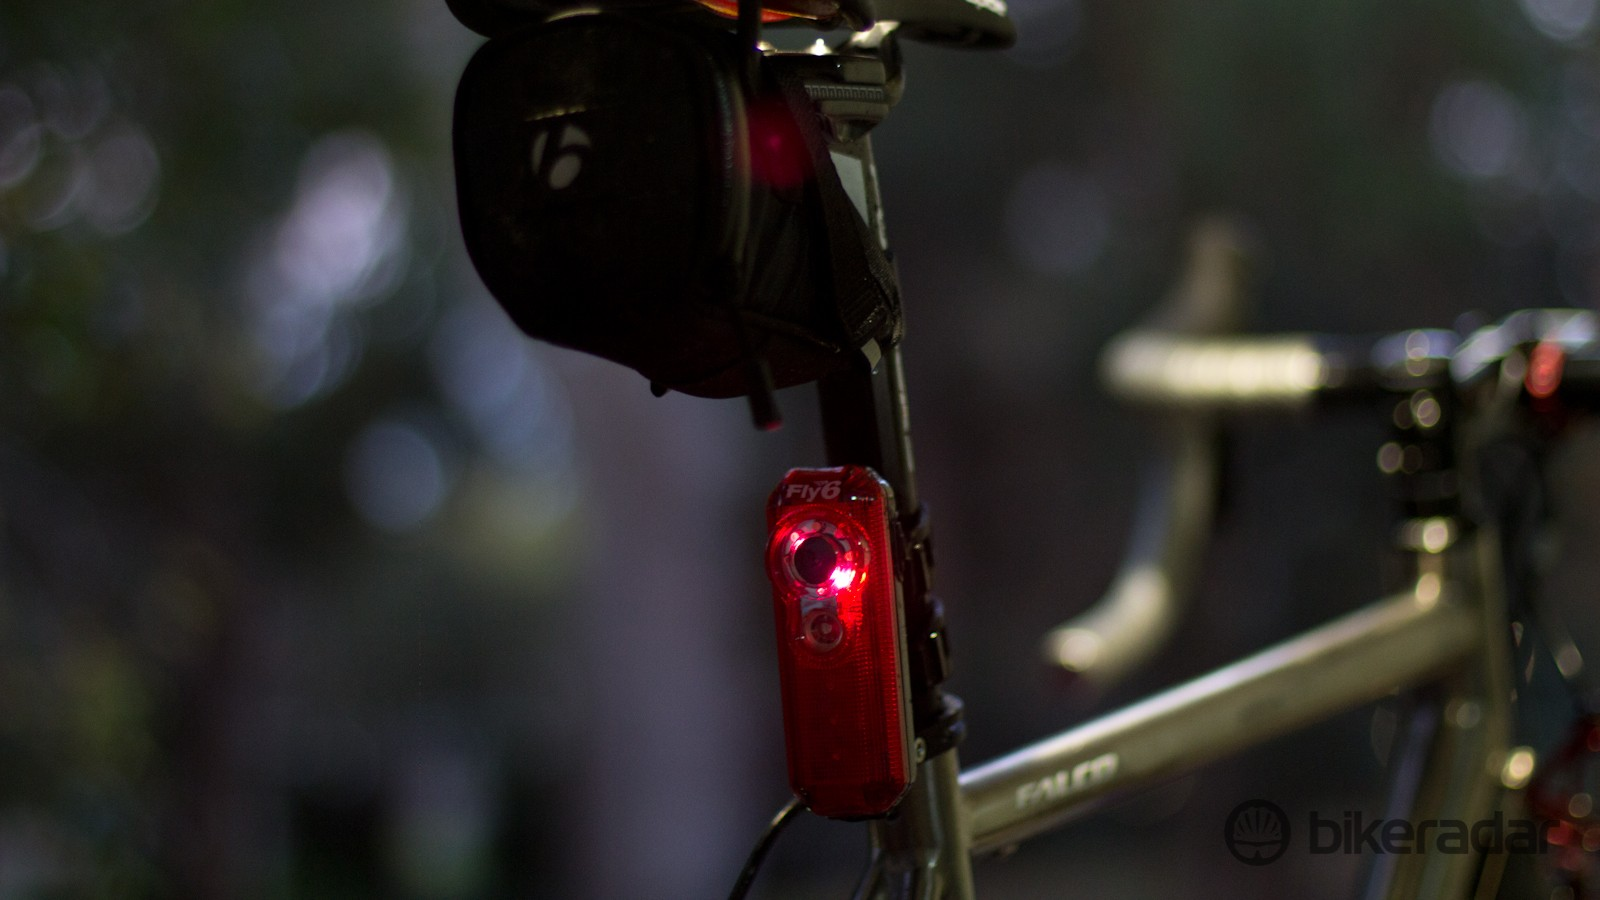 Fly6 started as a KickStarter campaign. Since then the parent brand has changed names to Cycliq and is quickly broadening its product range